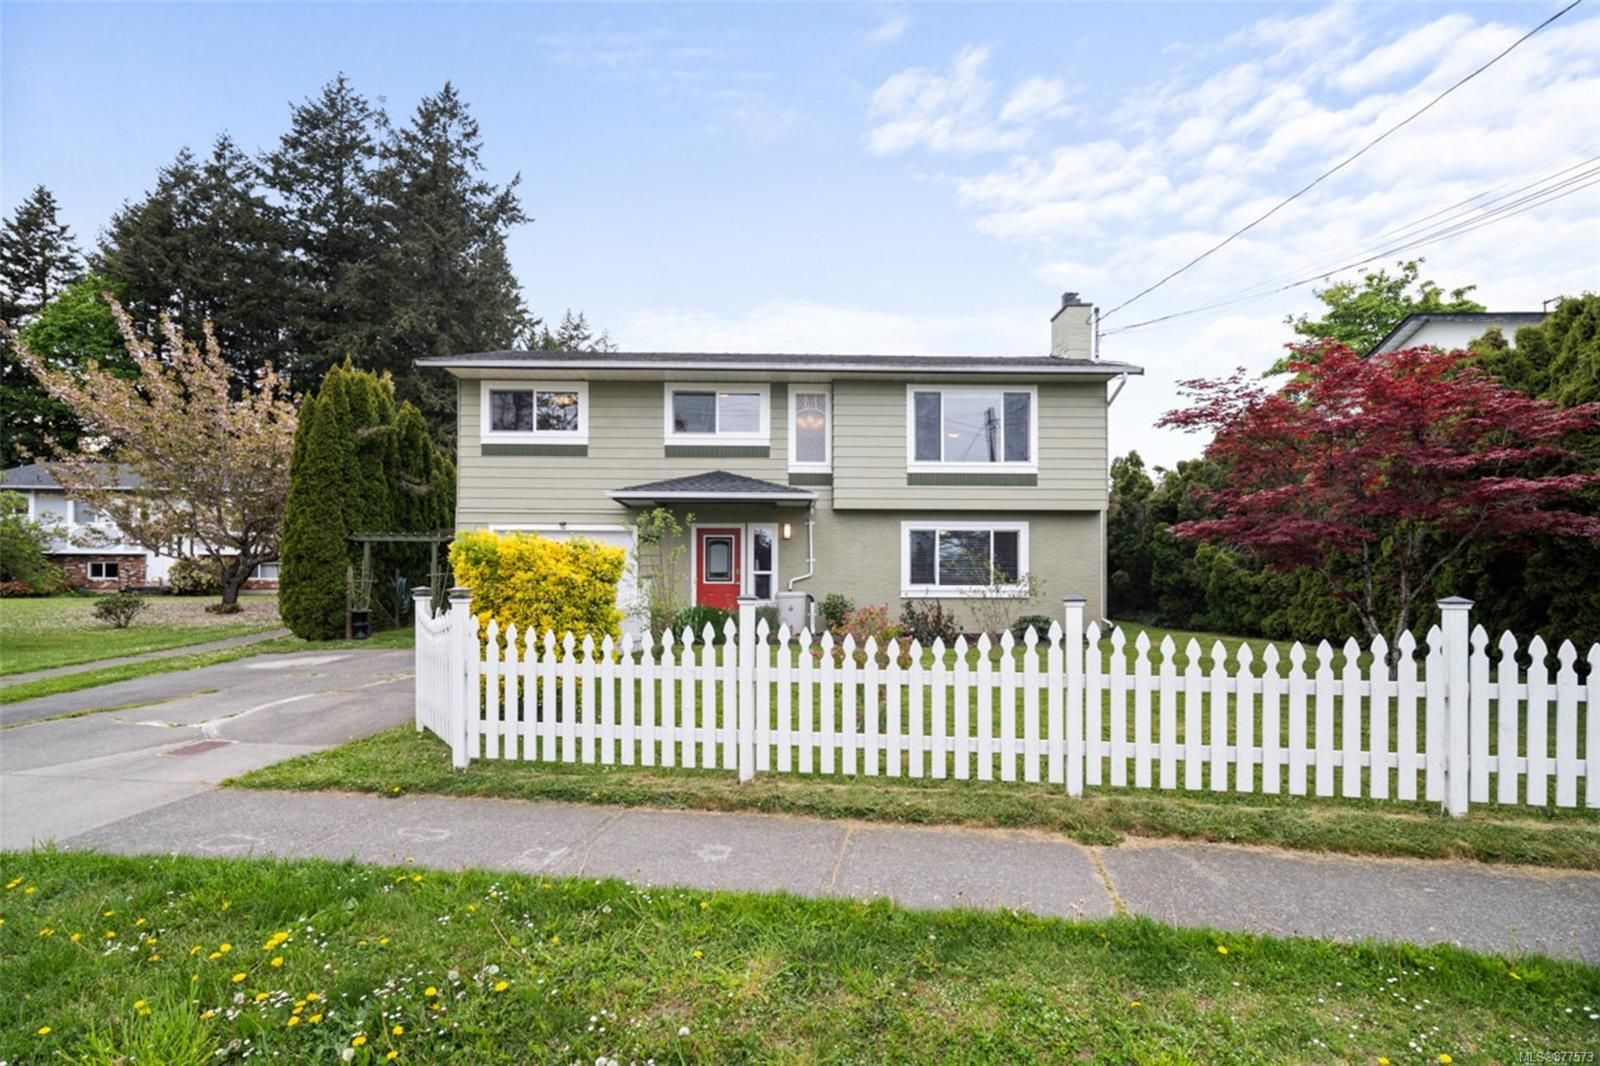 Main Photo: 7678 East Saanich Rd in : CS Saanichton House for sale (Central Saanich)  : MLS®# 877573